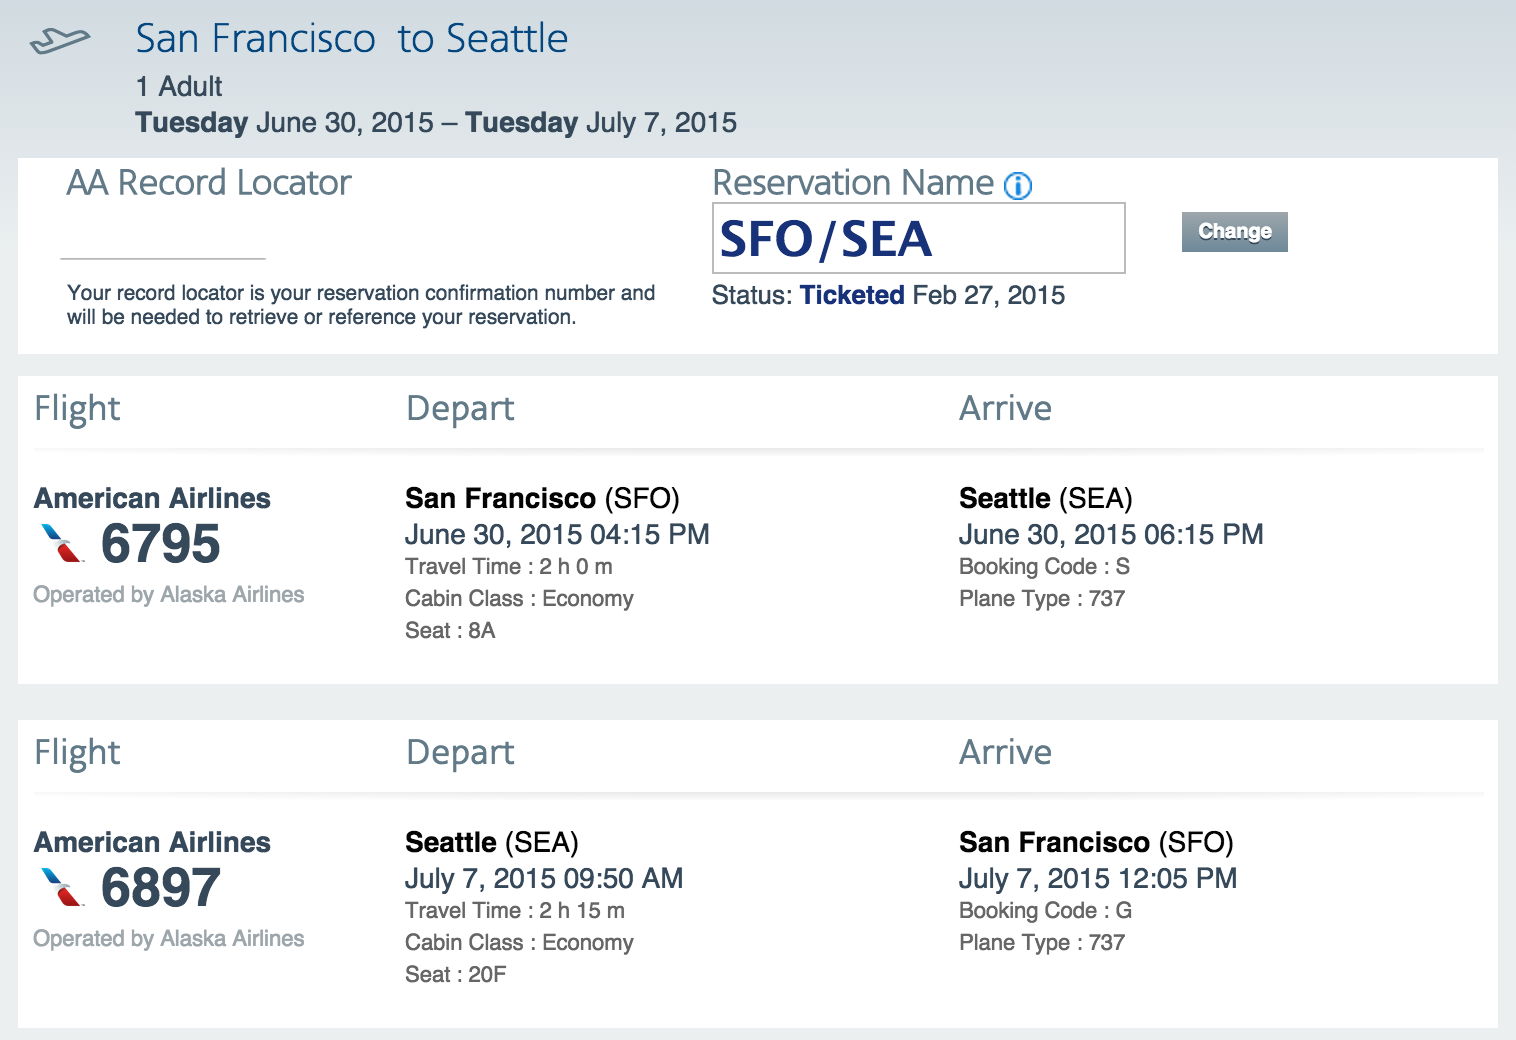 how to get an alaska airlines record locator for a flight